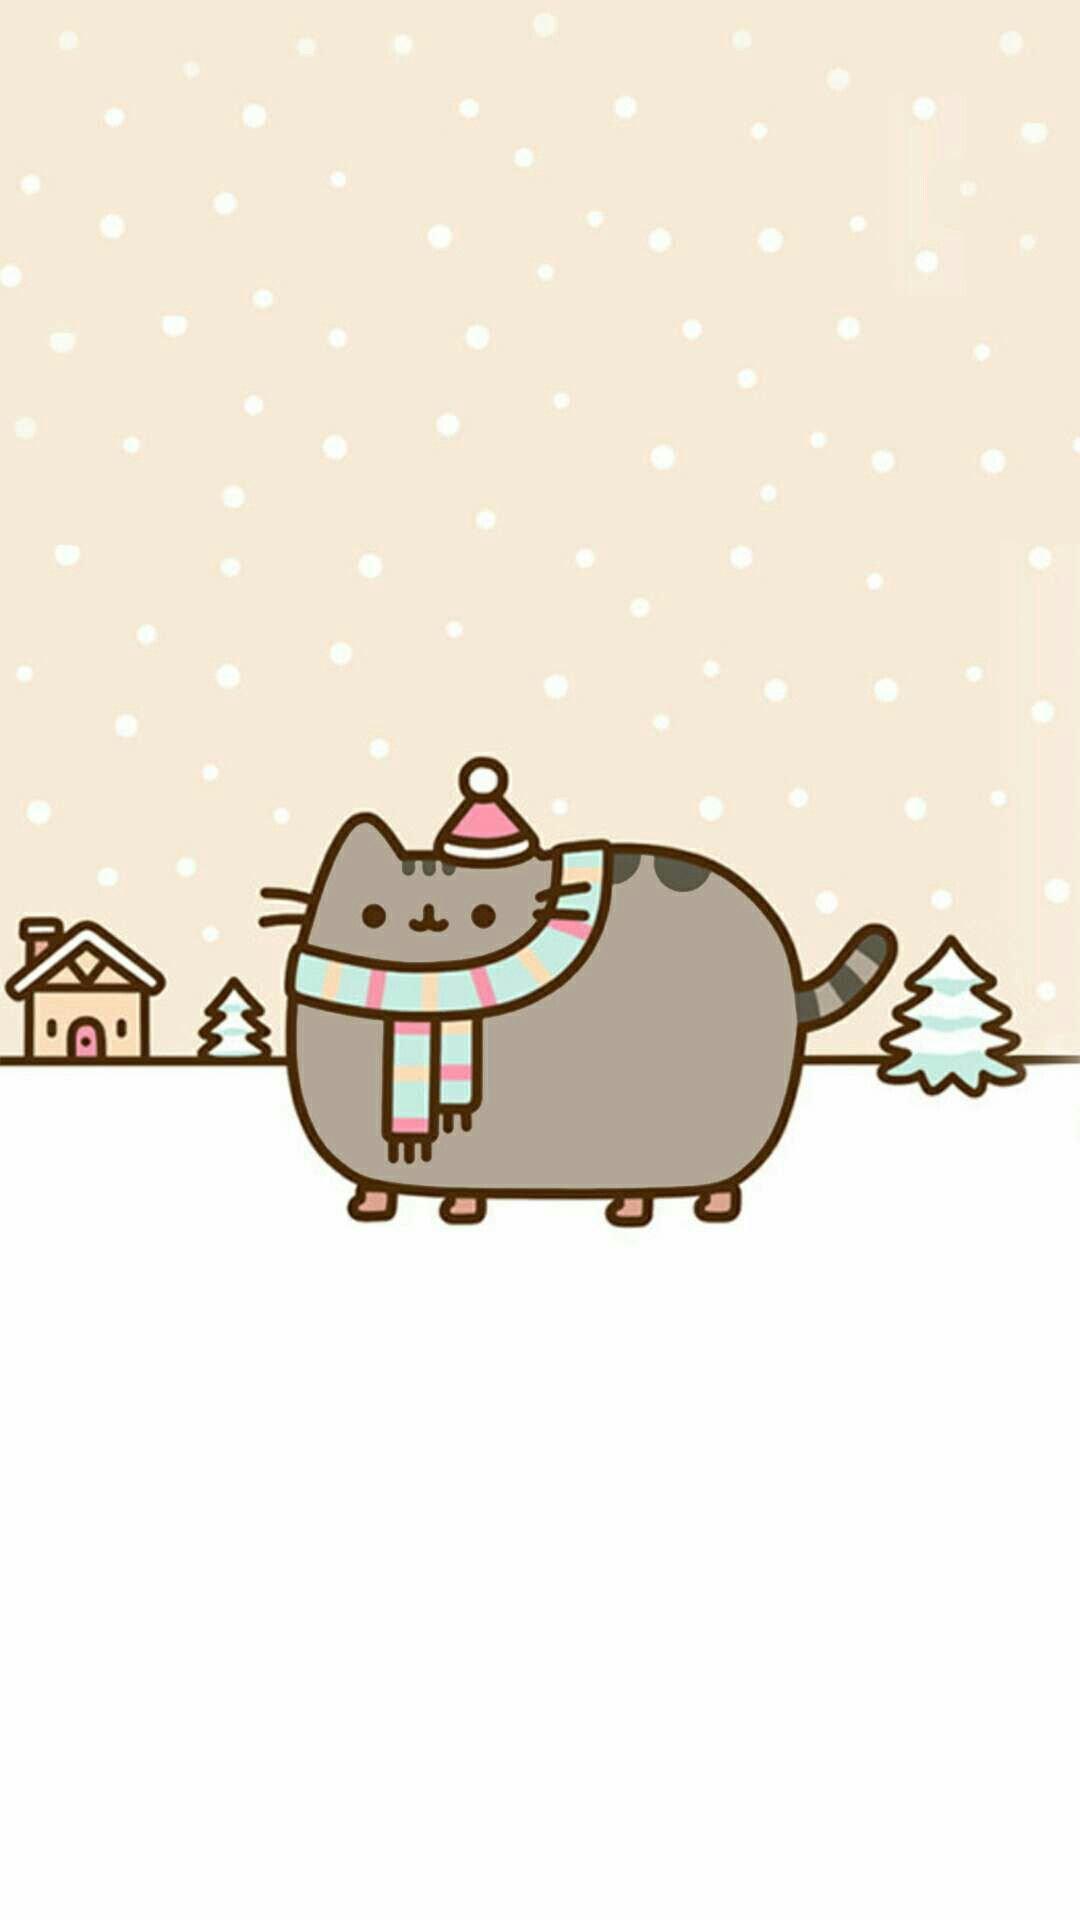 "736x1202 Astounding Pusheen The Cat Iphone Wallpaper – Wallpapersafari In ..."">"